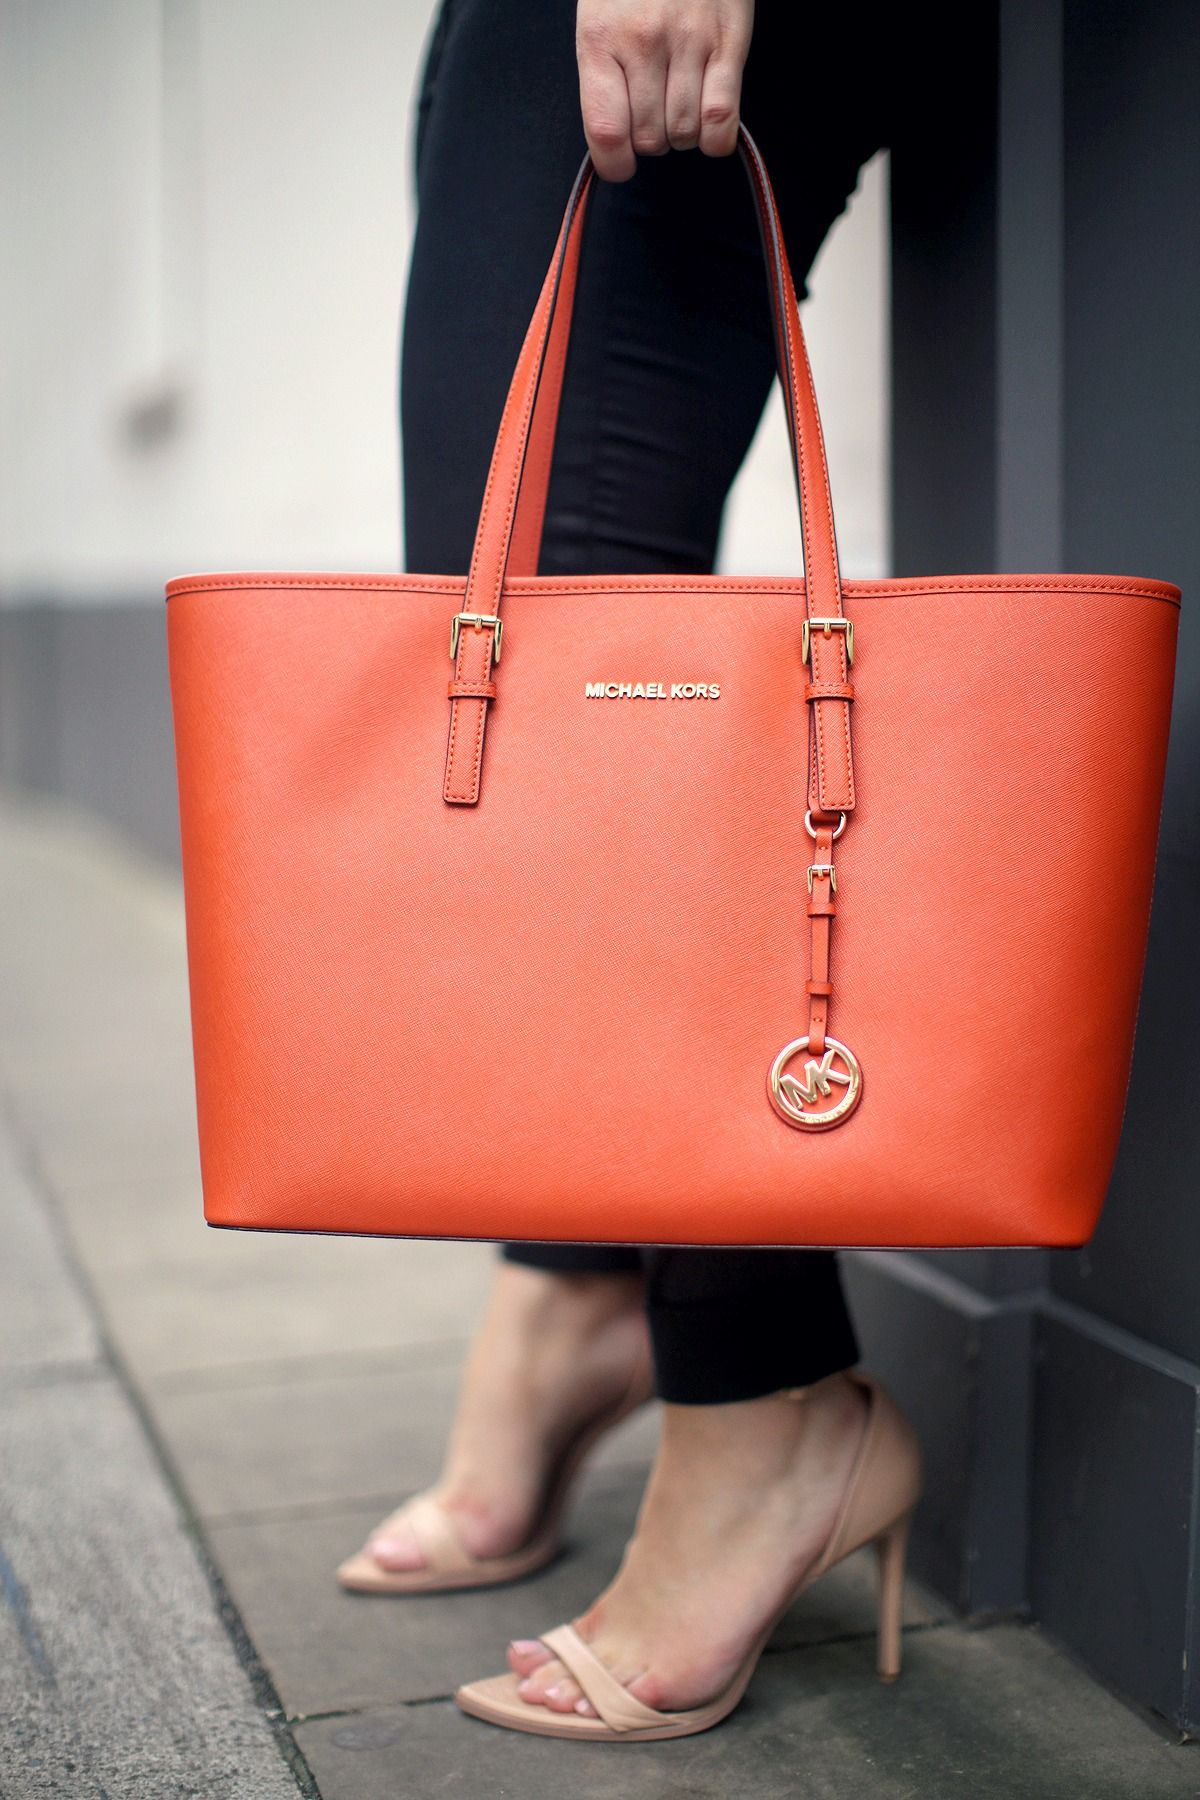 Michael Kors jetset tote for the office - I have this exact bag ...